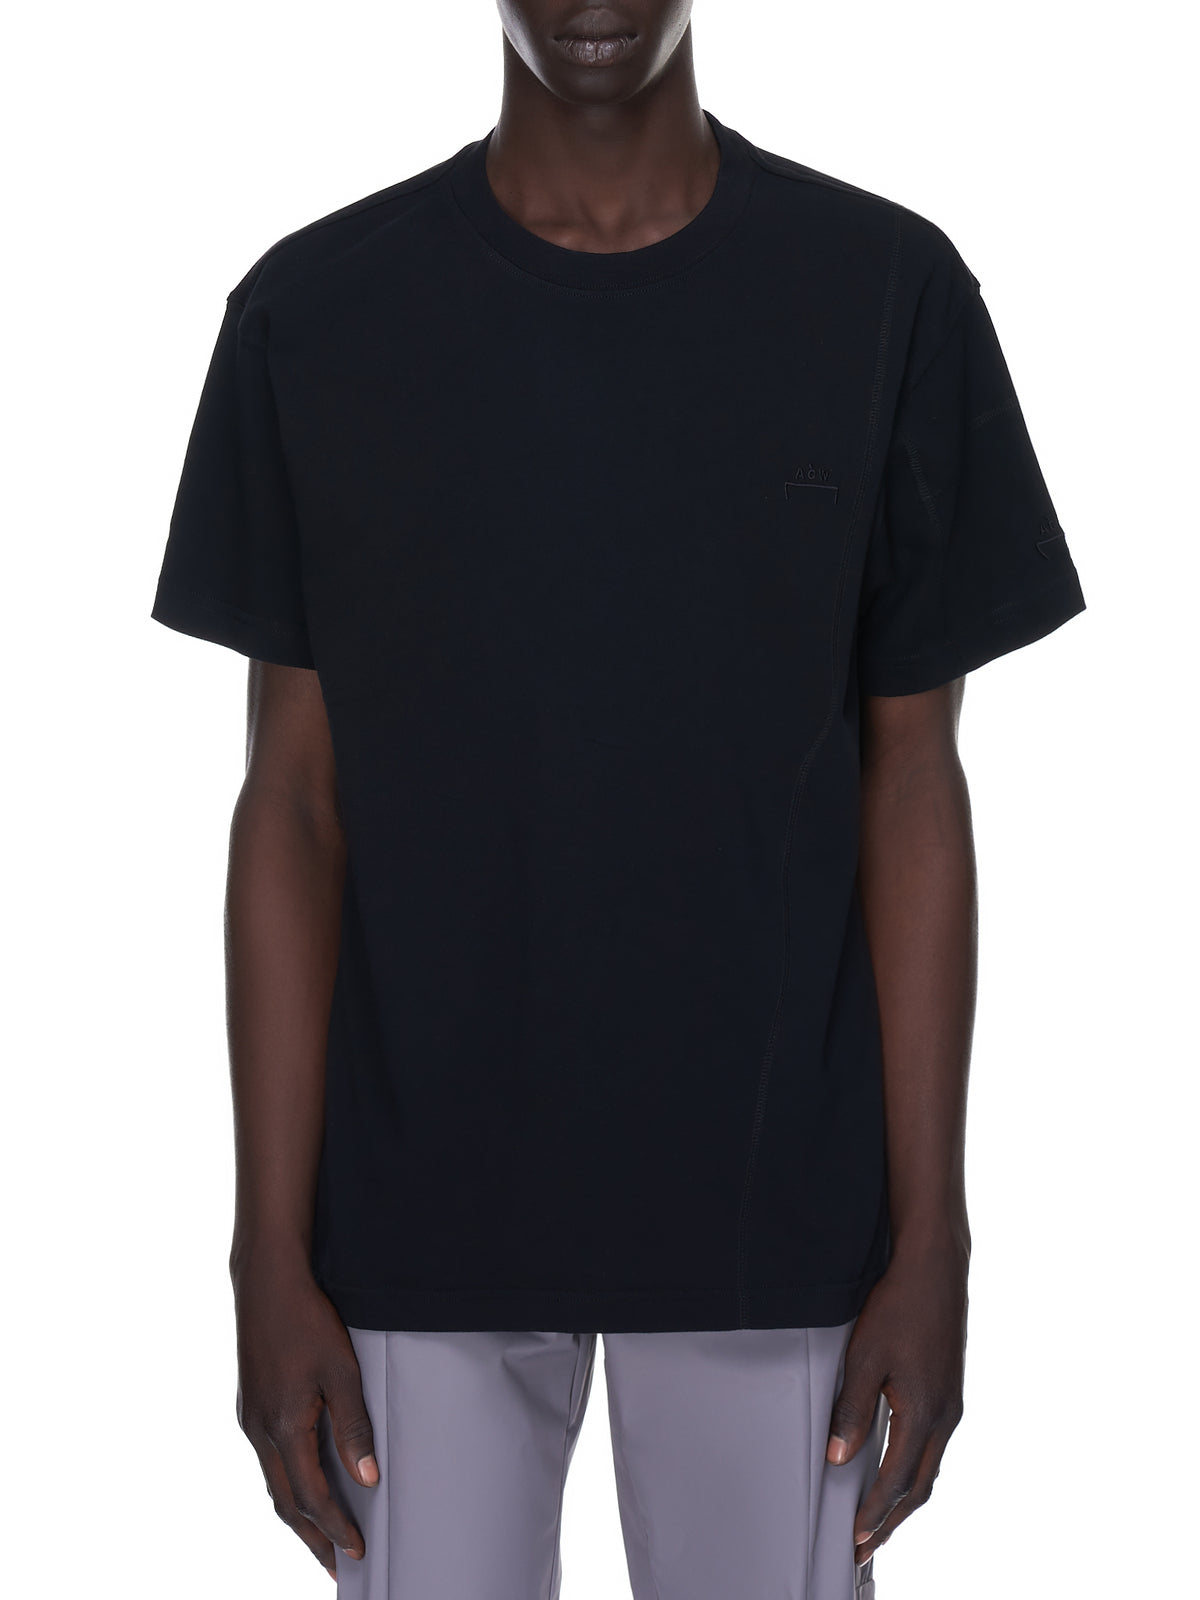 Overlock Basic Tee (MTS029-BLACK)